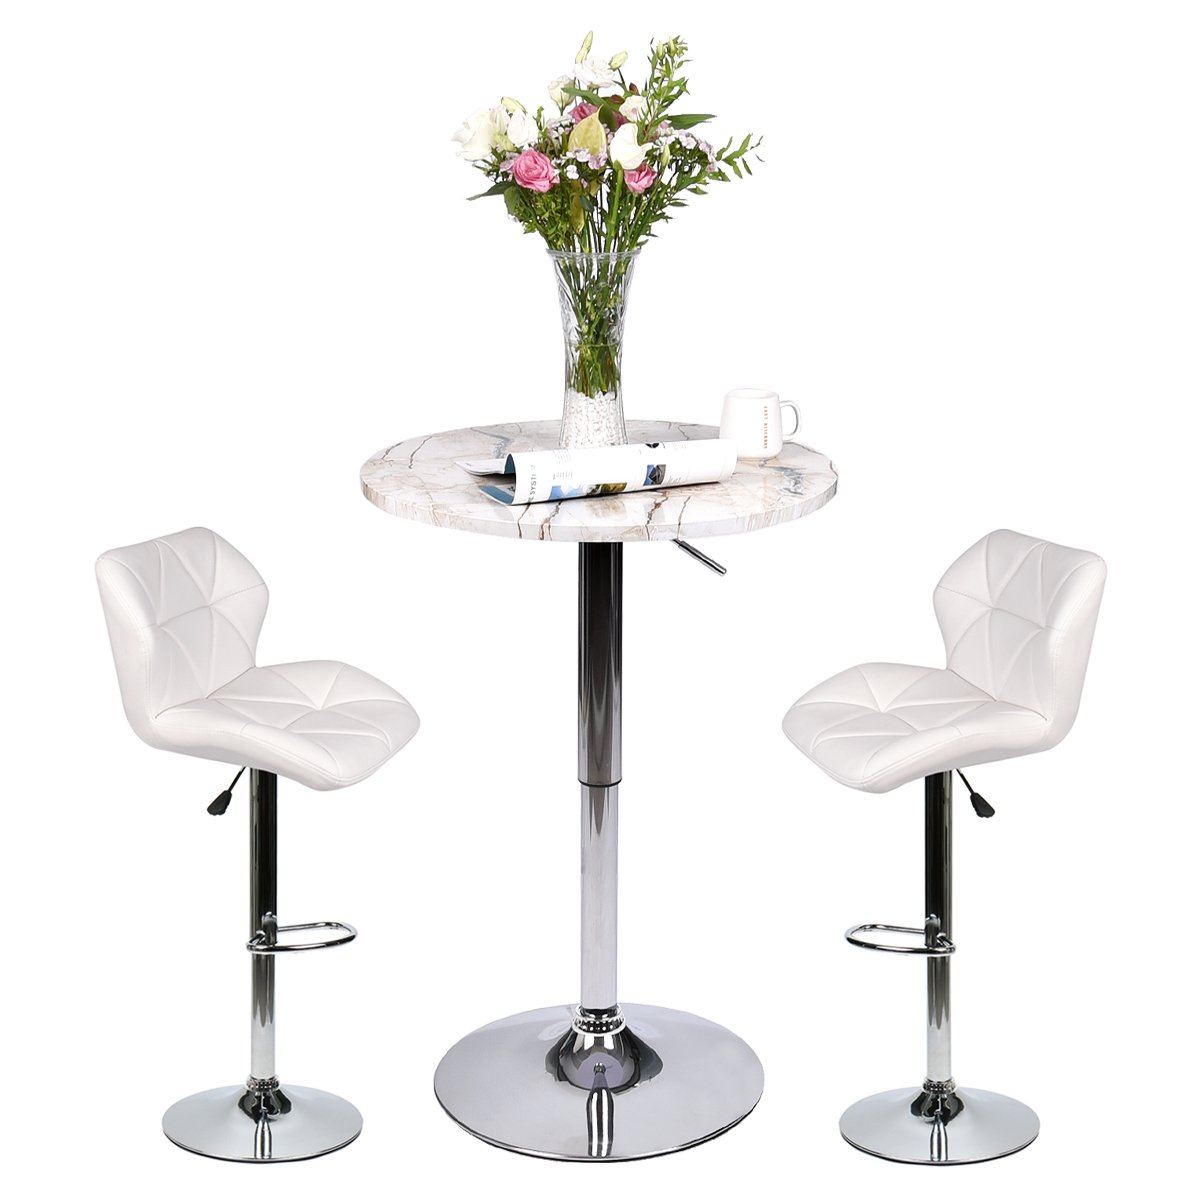 Pub Table Set 3 Piece - 24 inch Round Table with 2 Leatherette Chairs - Height Adjustable (White Barstools + Marble Stripe Pub Table)